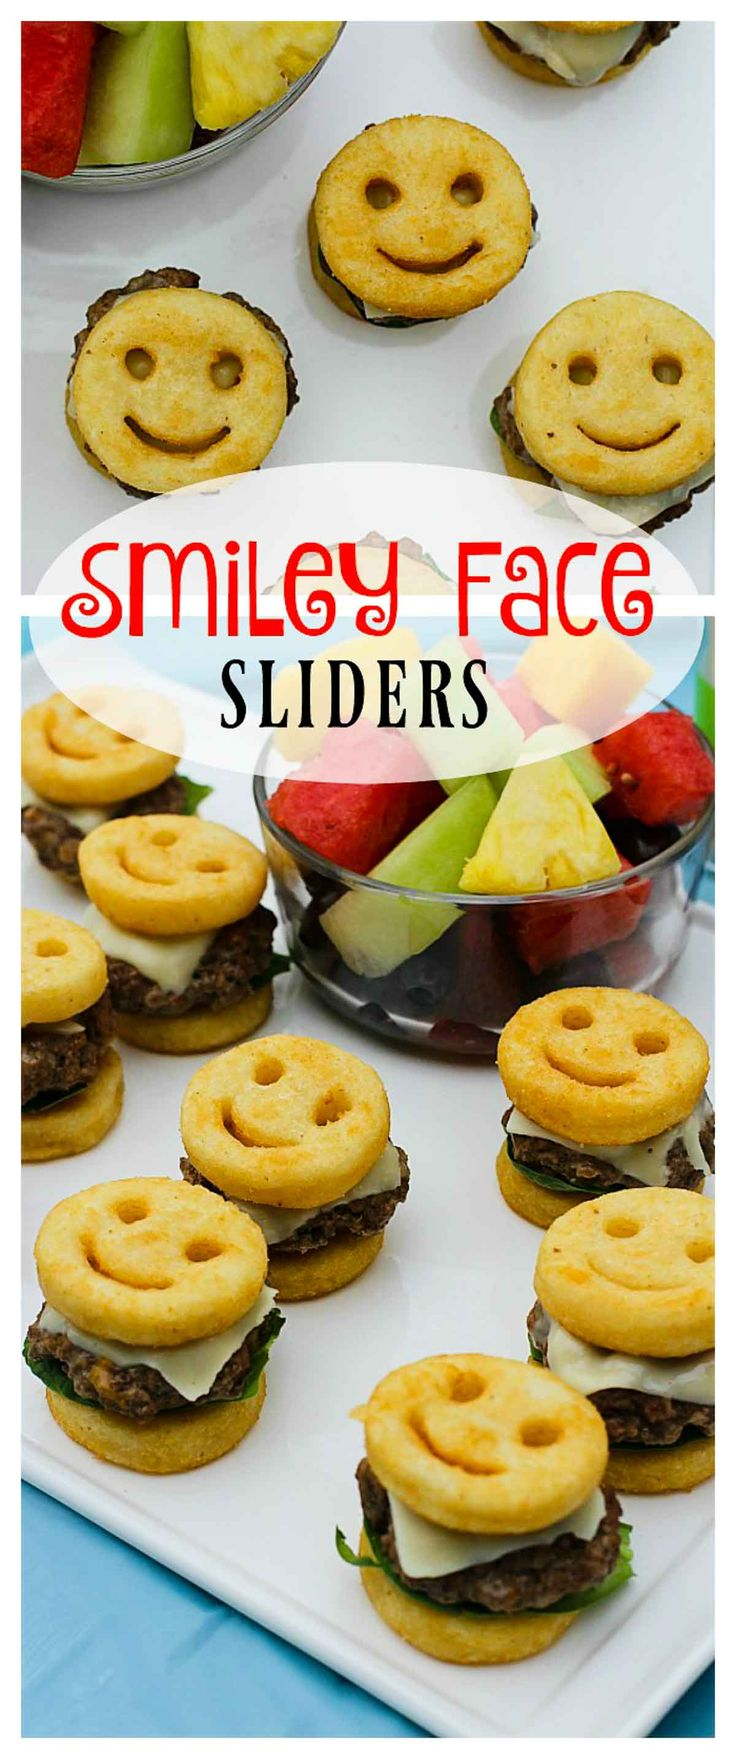 Have you ever seen anything cuter than these Smiley Face Sliders?! Perfect for appetizers or single bite entrees! Create shareable summer moments with McCain French fries! #JoyintheSummer #ad